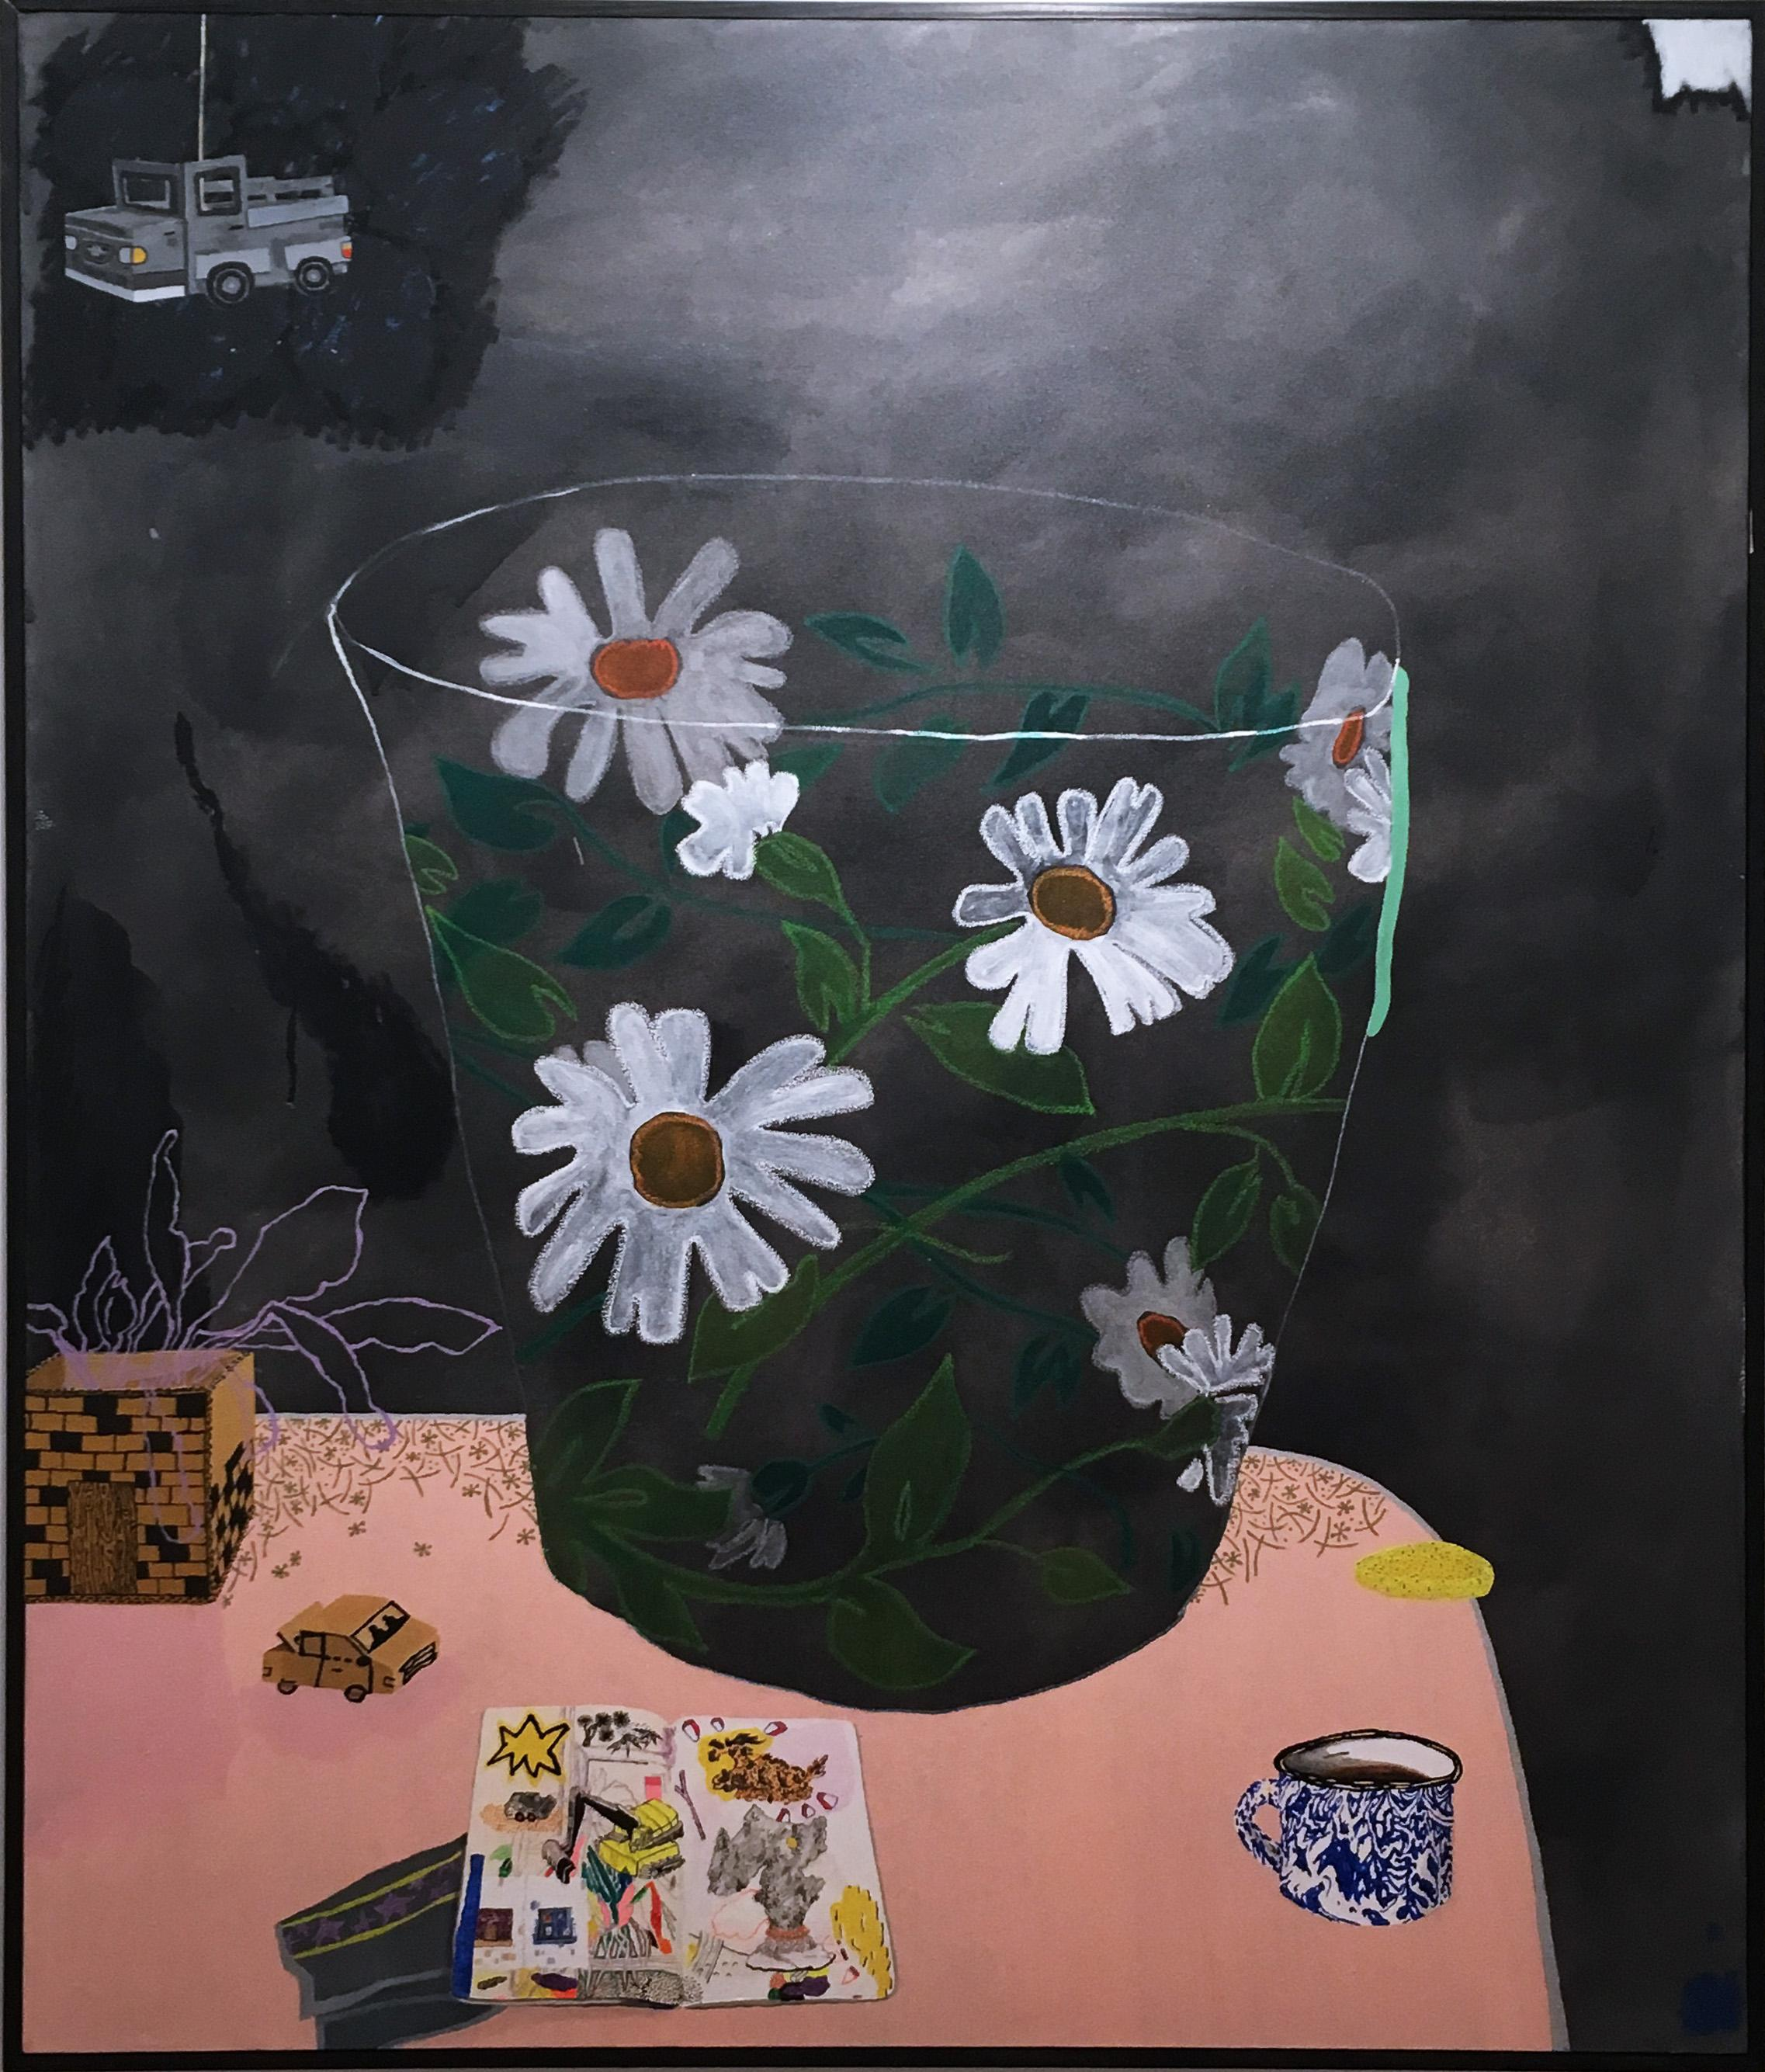 Big Cup, still life oil painting, interior, daisies, kitchen, coffee, sketchbook